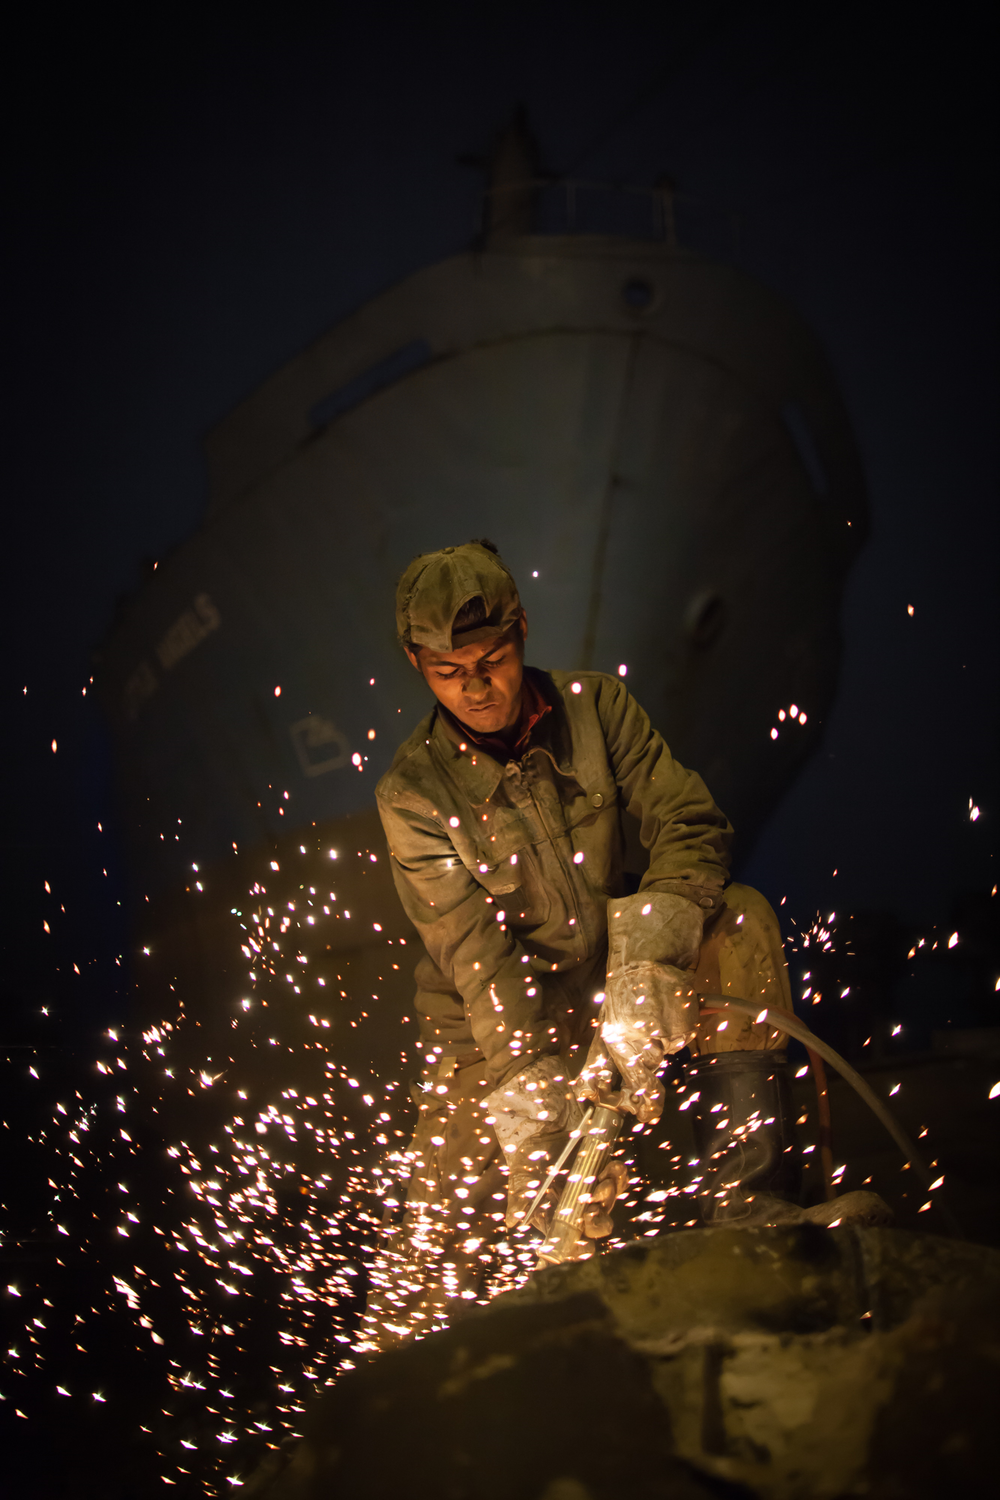 A worker using a blowtorch at night. Copyright Pierre Torset. See more of Pierre's shipbreaking photos here.